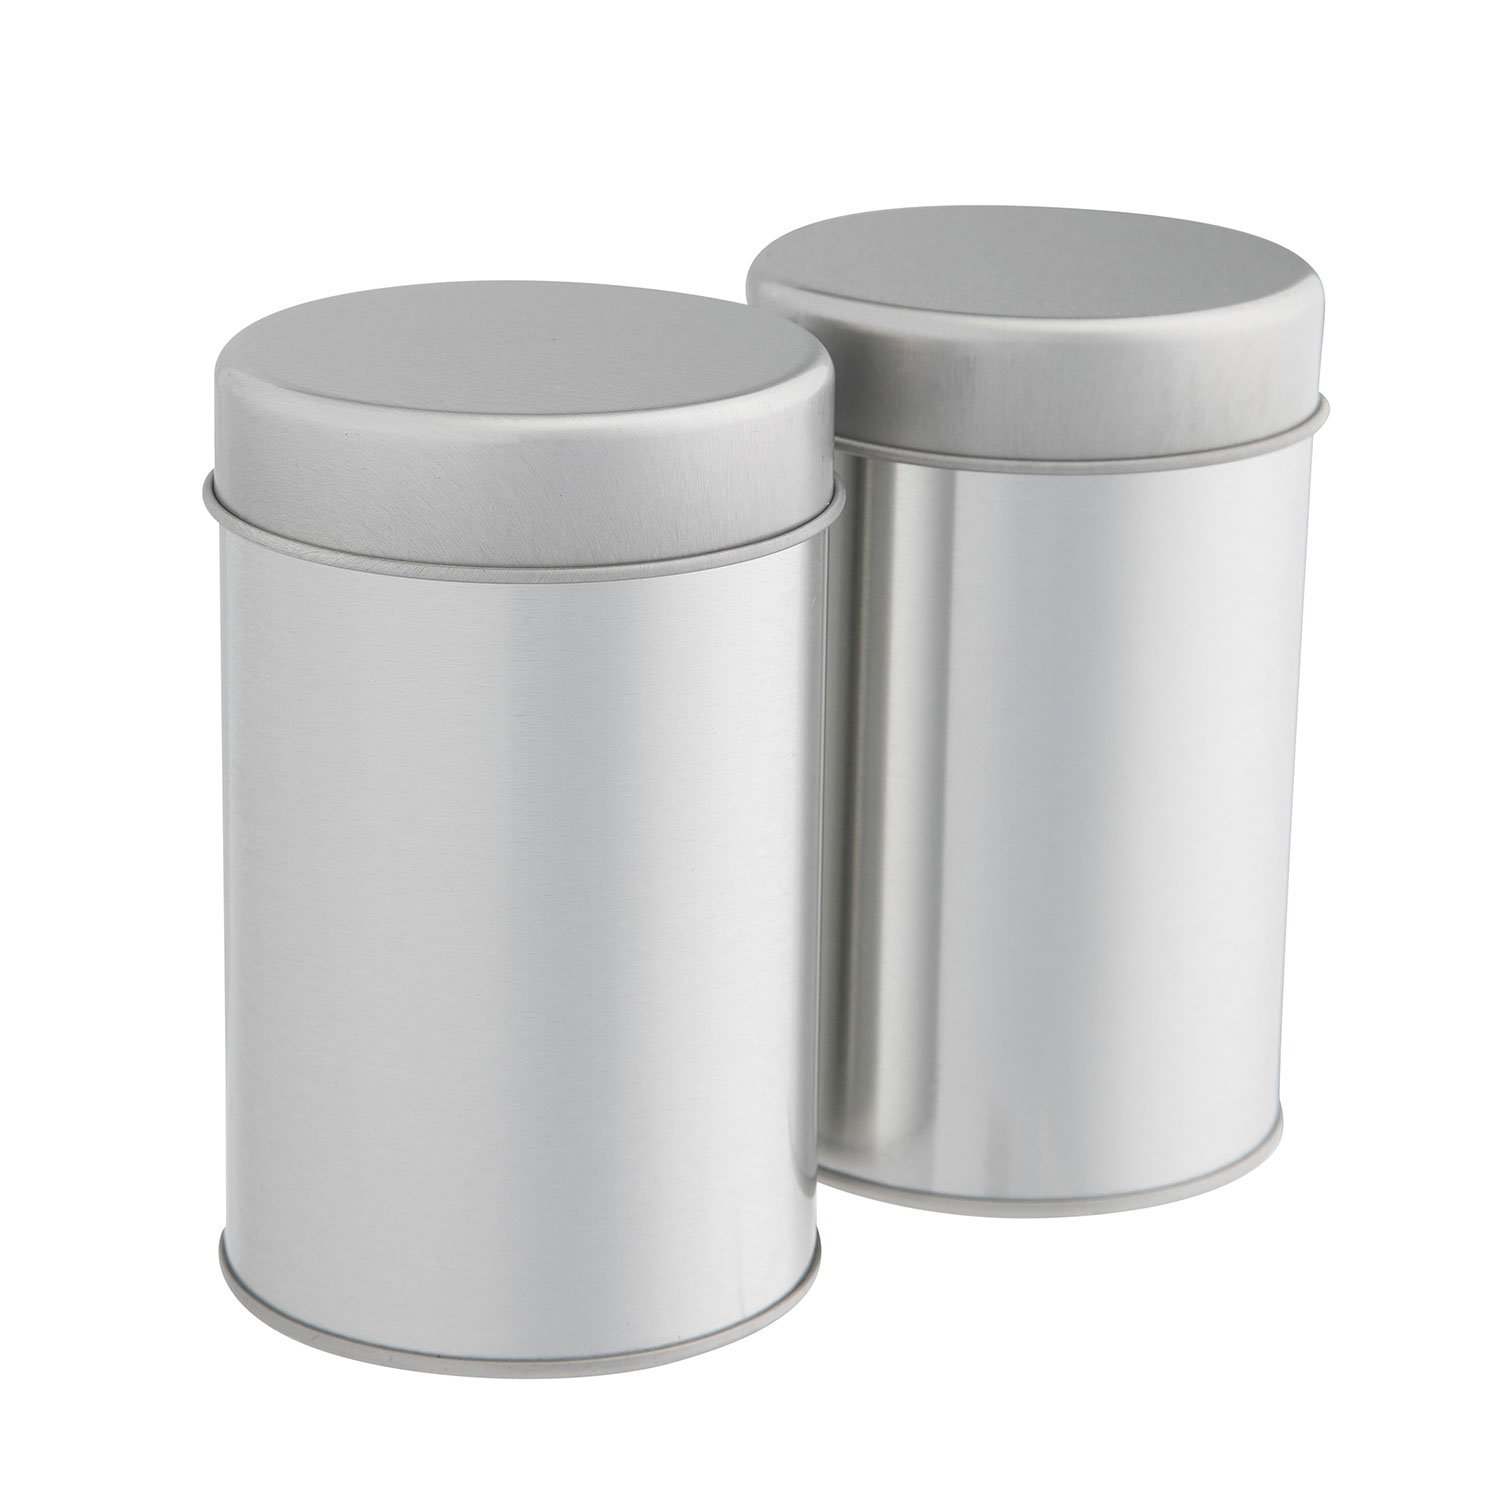 Tea Tins Canister Set with Airtight Double Lids for Loose Tea - Small Kitchen Canisters for Tea Coffee Sugar Storage, Loose Leaf Tea Tin Containers by SilverOnyx - Tea Canisters - 2 pc